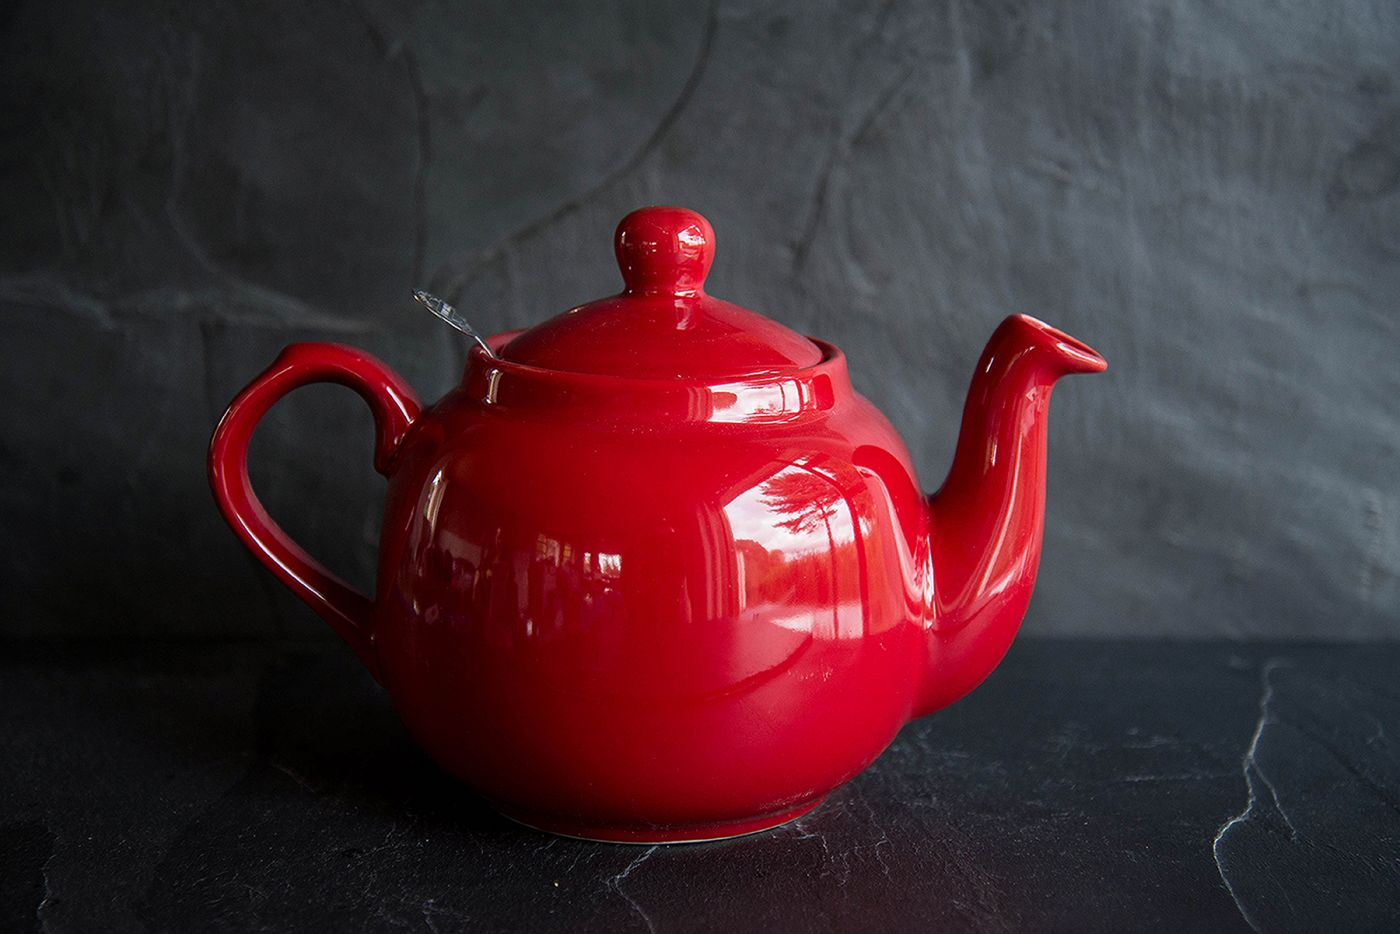 Farmhouse Red 4 Cup Infuser Teapot